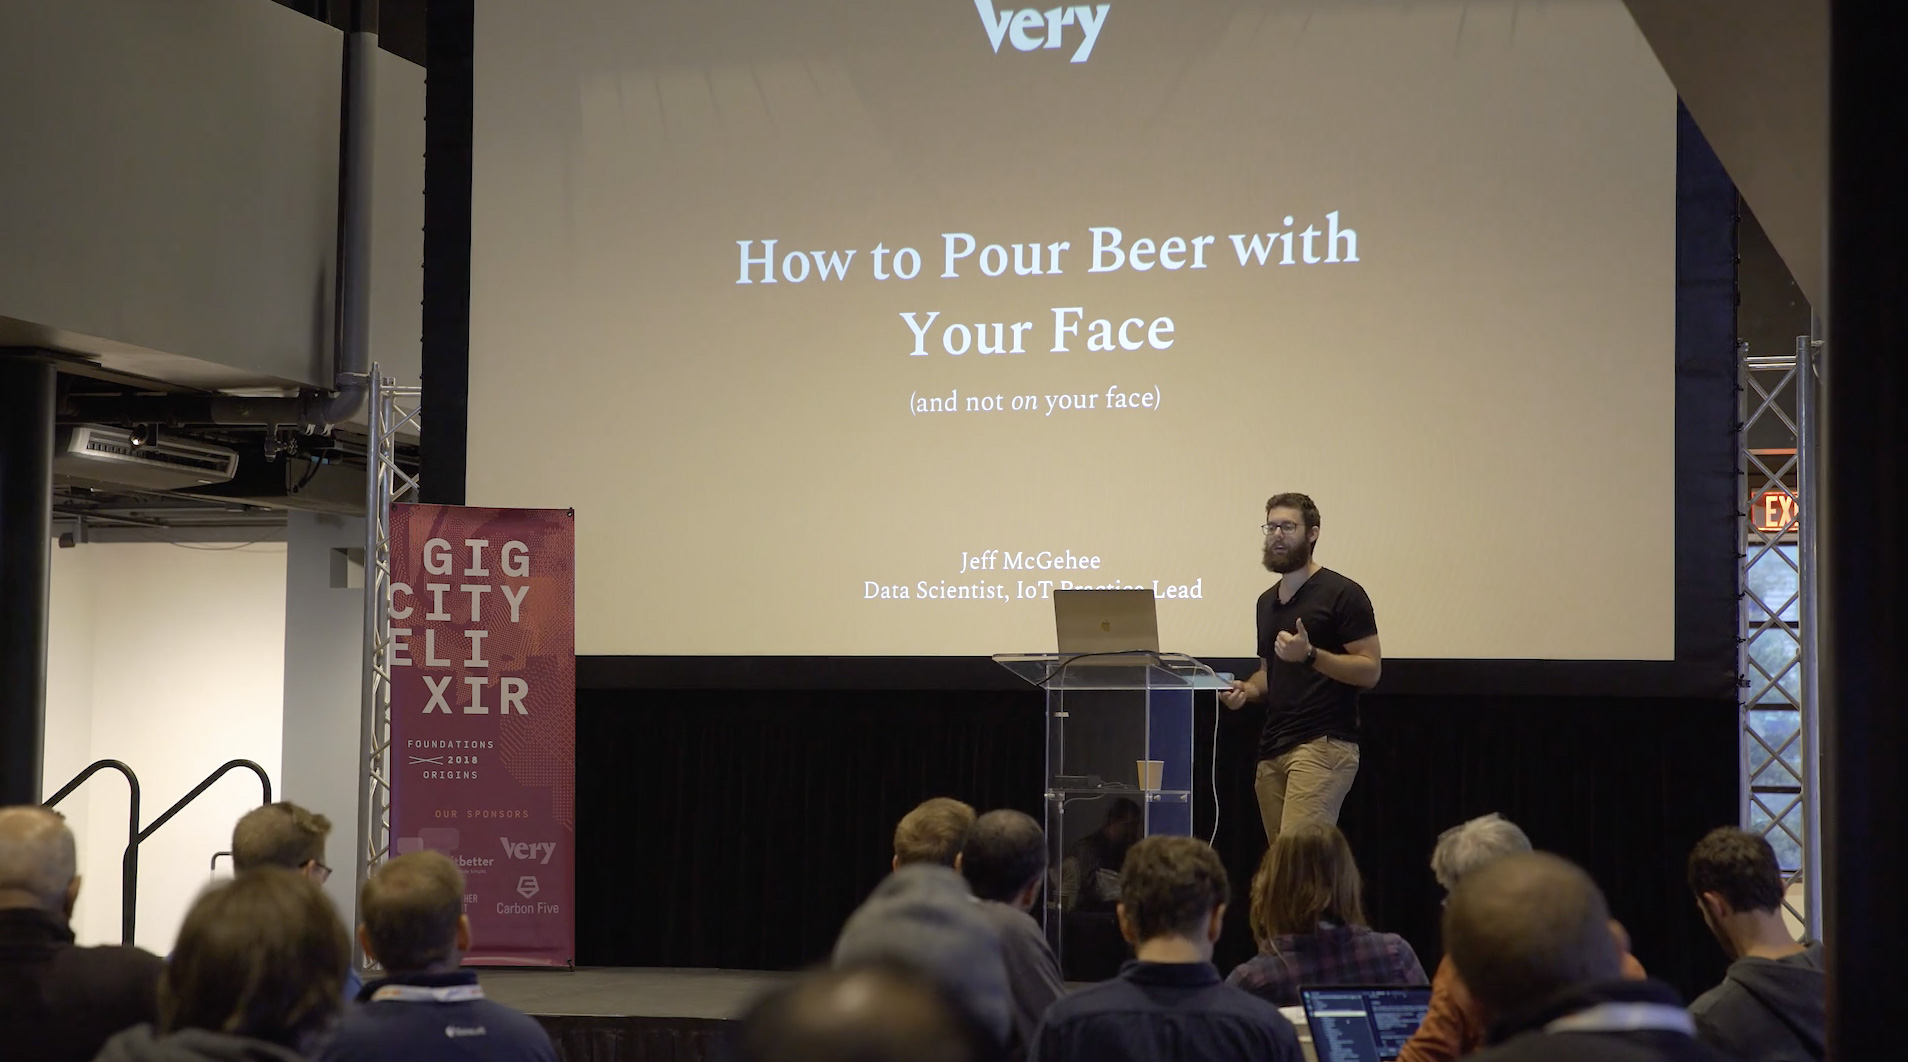 [Video] Building an IoT Beer Kiosk with Elixir and Nerves